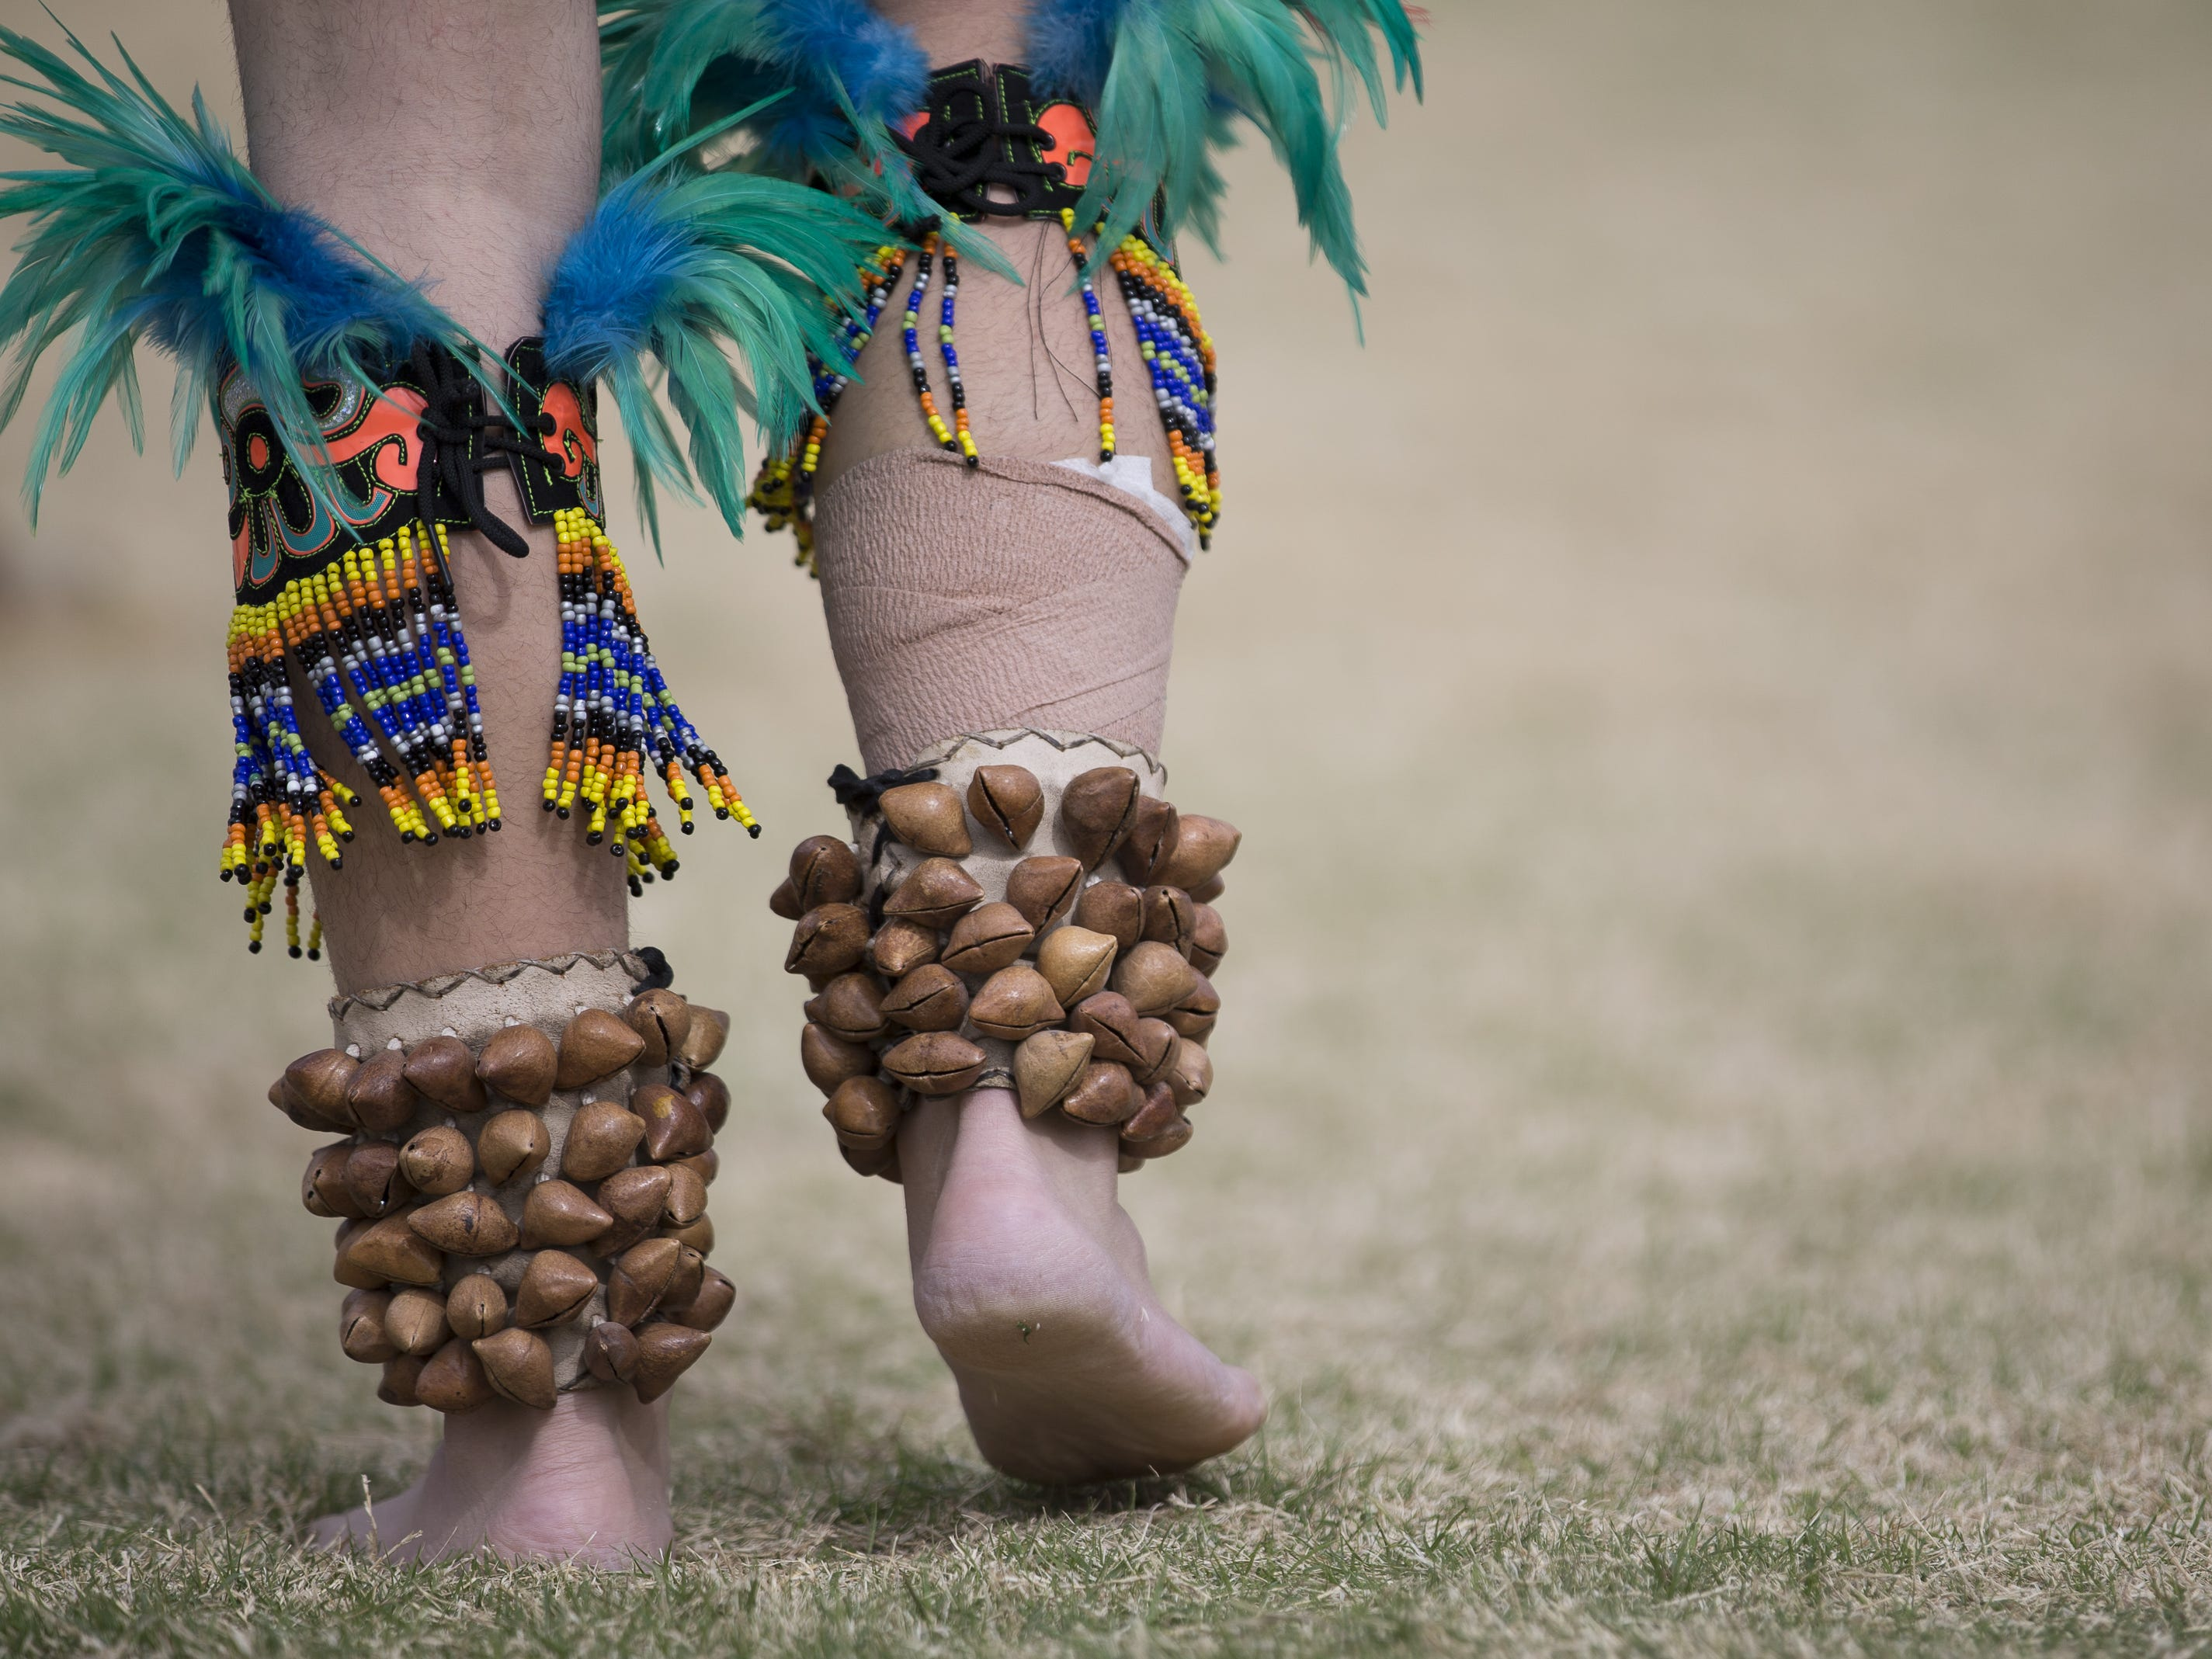 Dancers perform at the Native Two Spirit Powwow at South Mountain Community College in Phoenix, Ariz. on Saturday, March 9, 2019. The powwow was the first of its kind in Arizona, featuring members who identified as two spirit, and members who did not, dancing together.